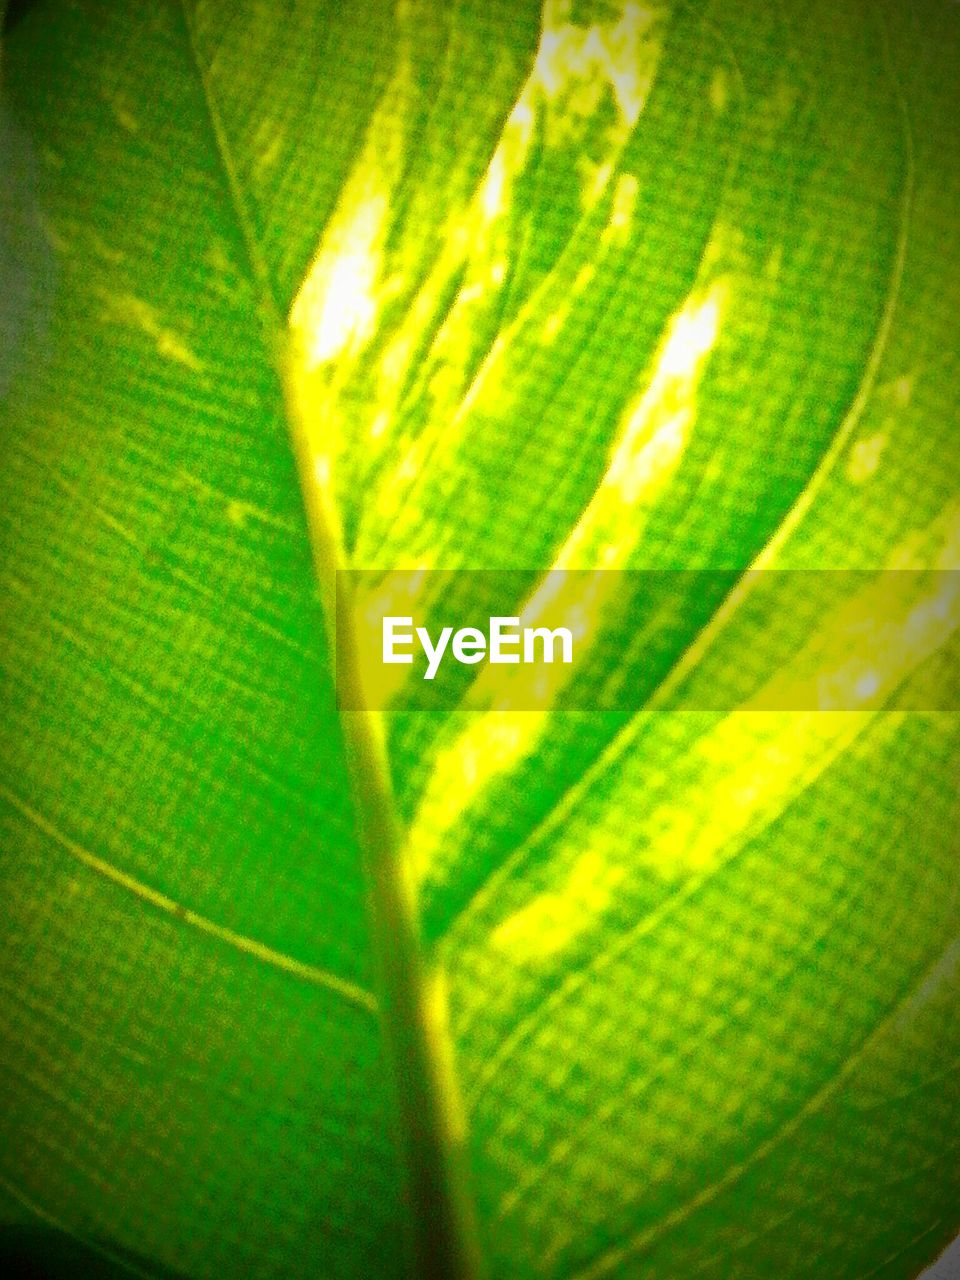 green color, leaf, backgrounds, full frame, no people, close-up, freshness, growth, nature, plant, banana leaf, day, beauty in nature, food, outdoors